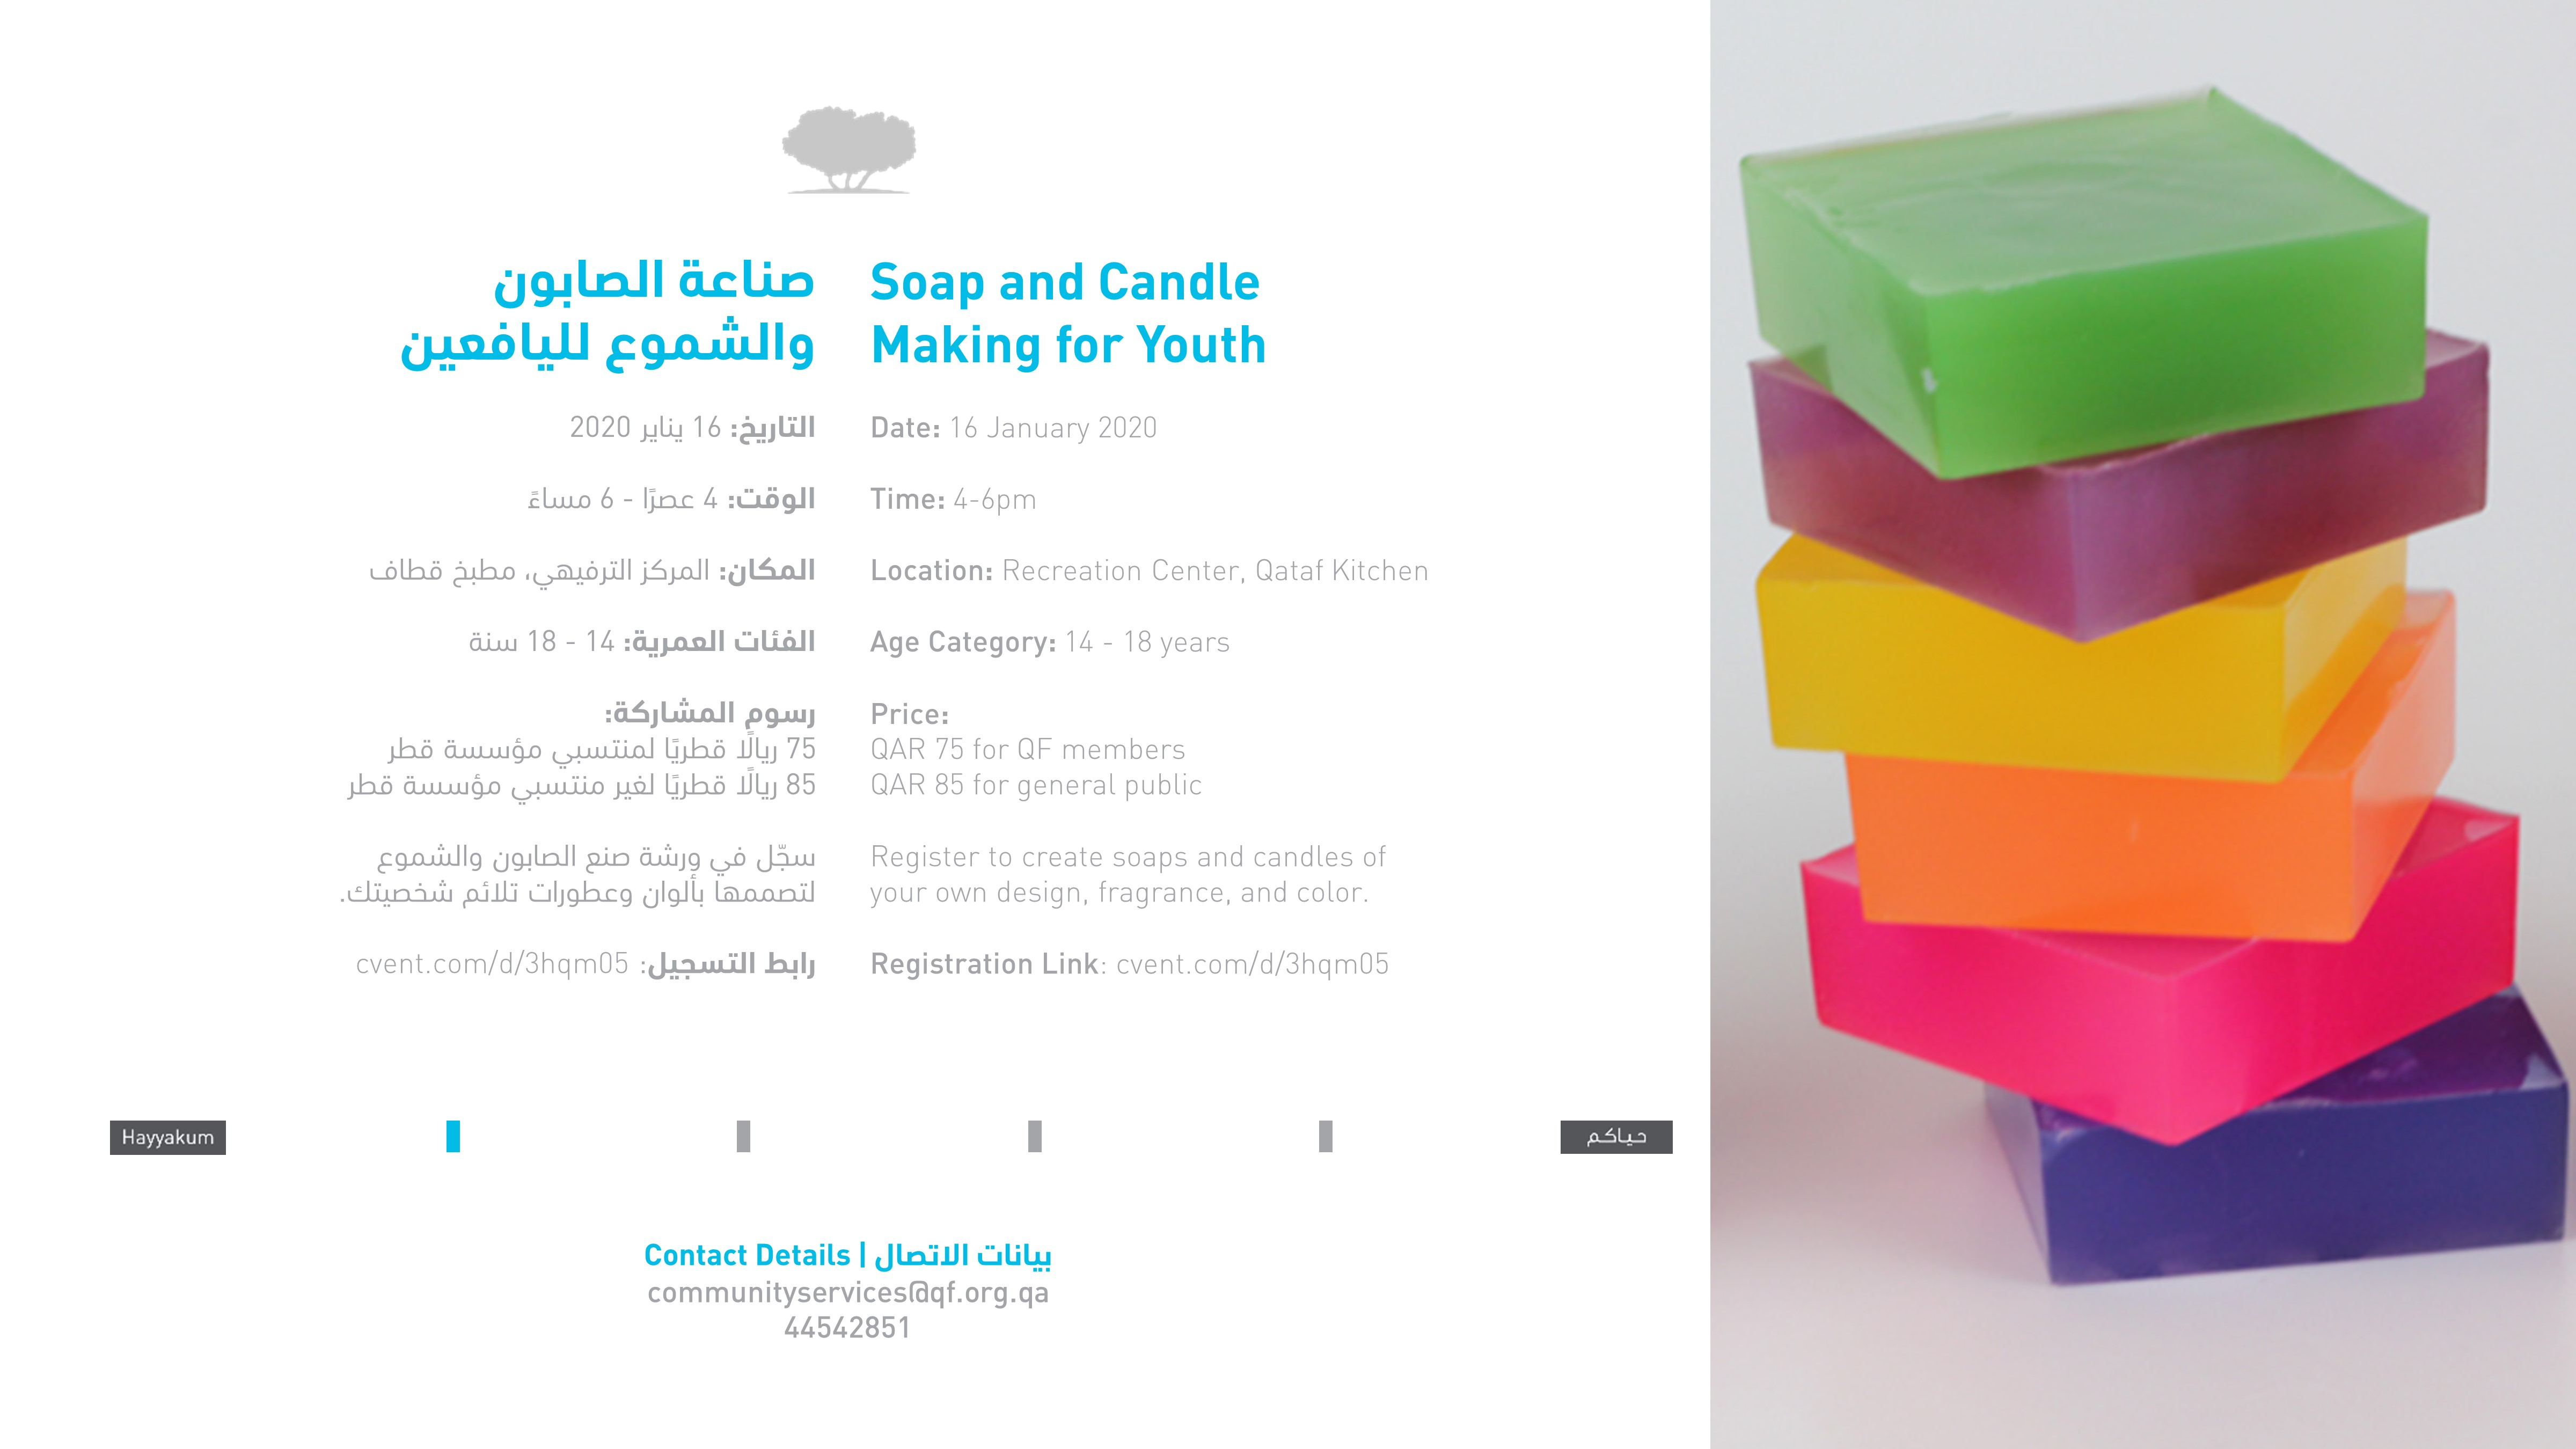 Soap and Candle making for Youth